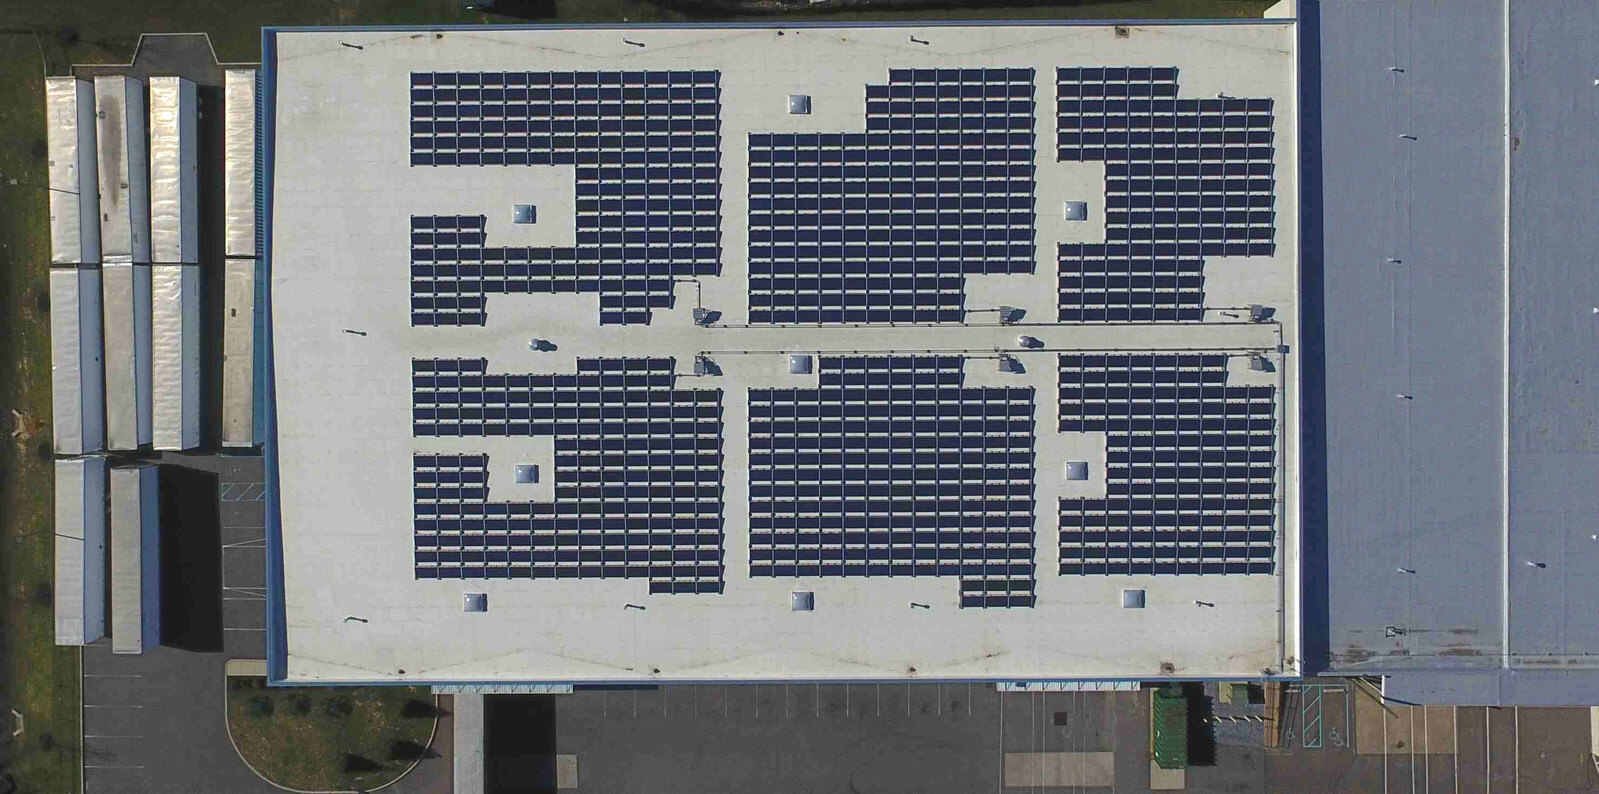 solar industry paper The industry, and what hiring managers should look for, as well as some of the tools and new sales strategies that may be emerging interactive discussions and questions are encouraged biography: andy black is a solar financial analyst and the owner of ongrid solar.